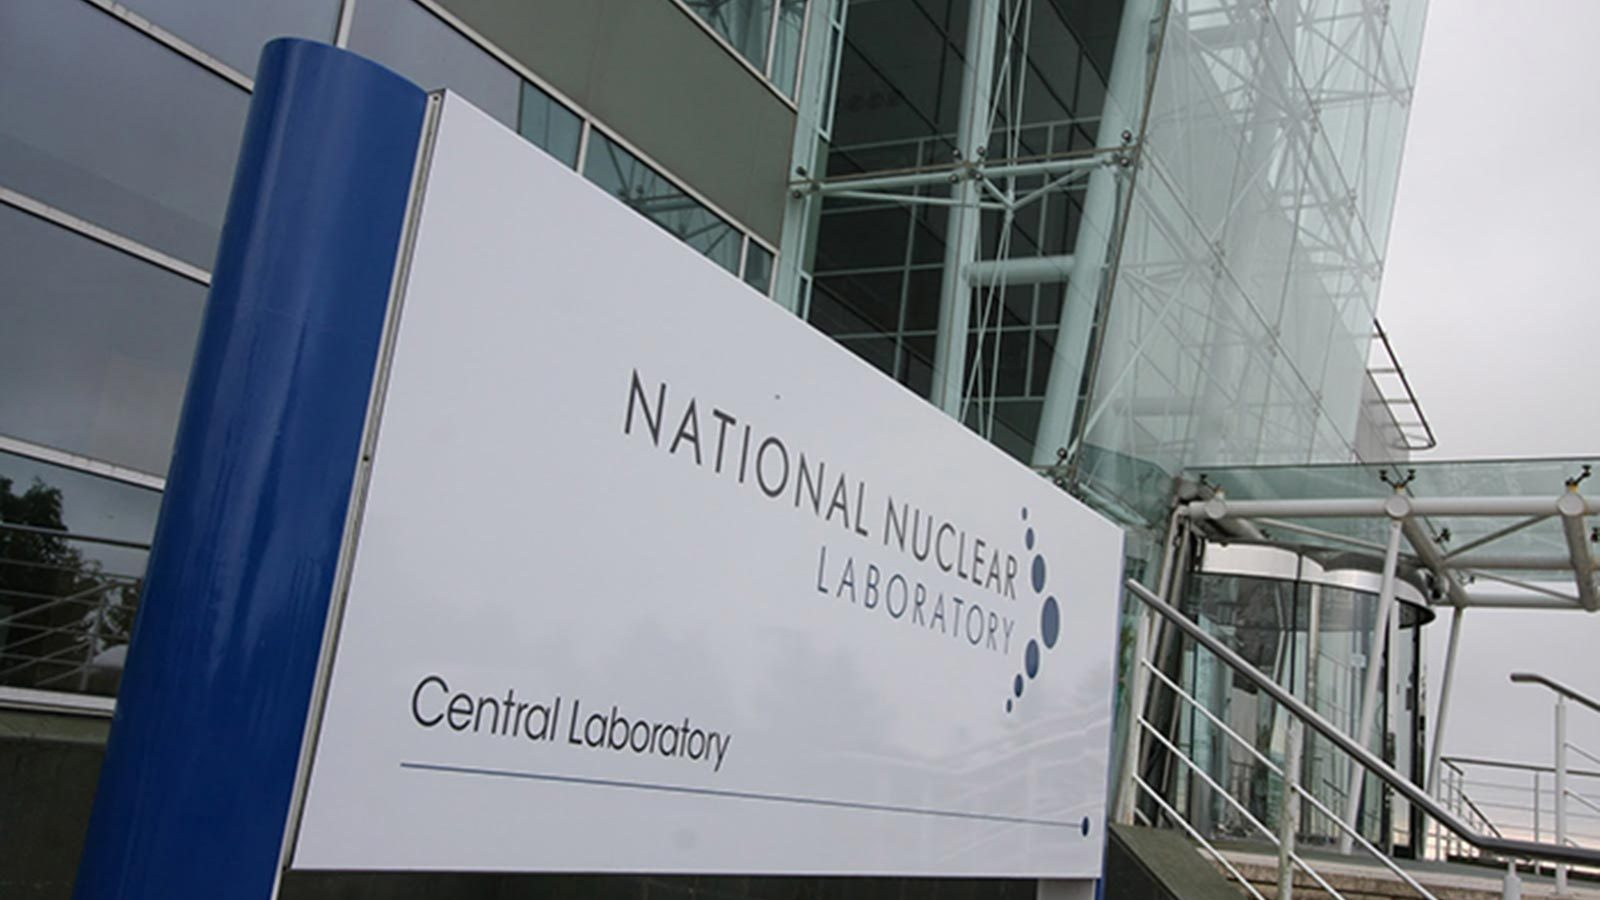 National Nuclear Laboratory